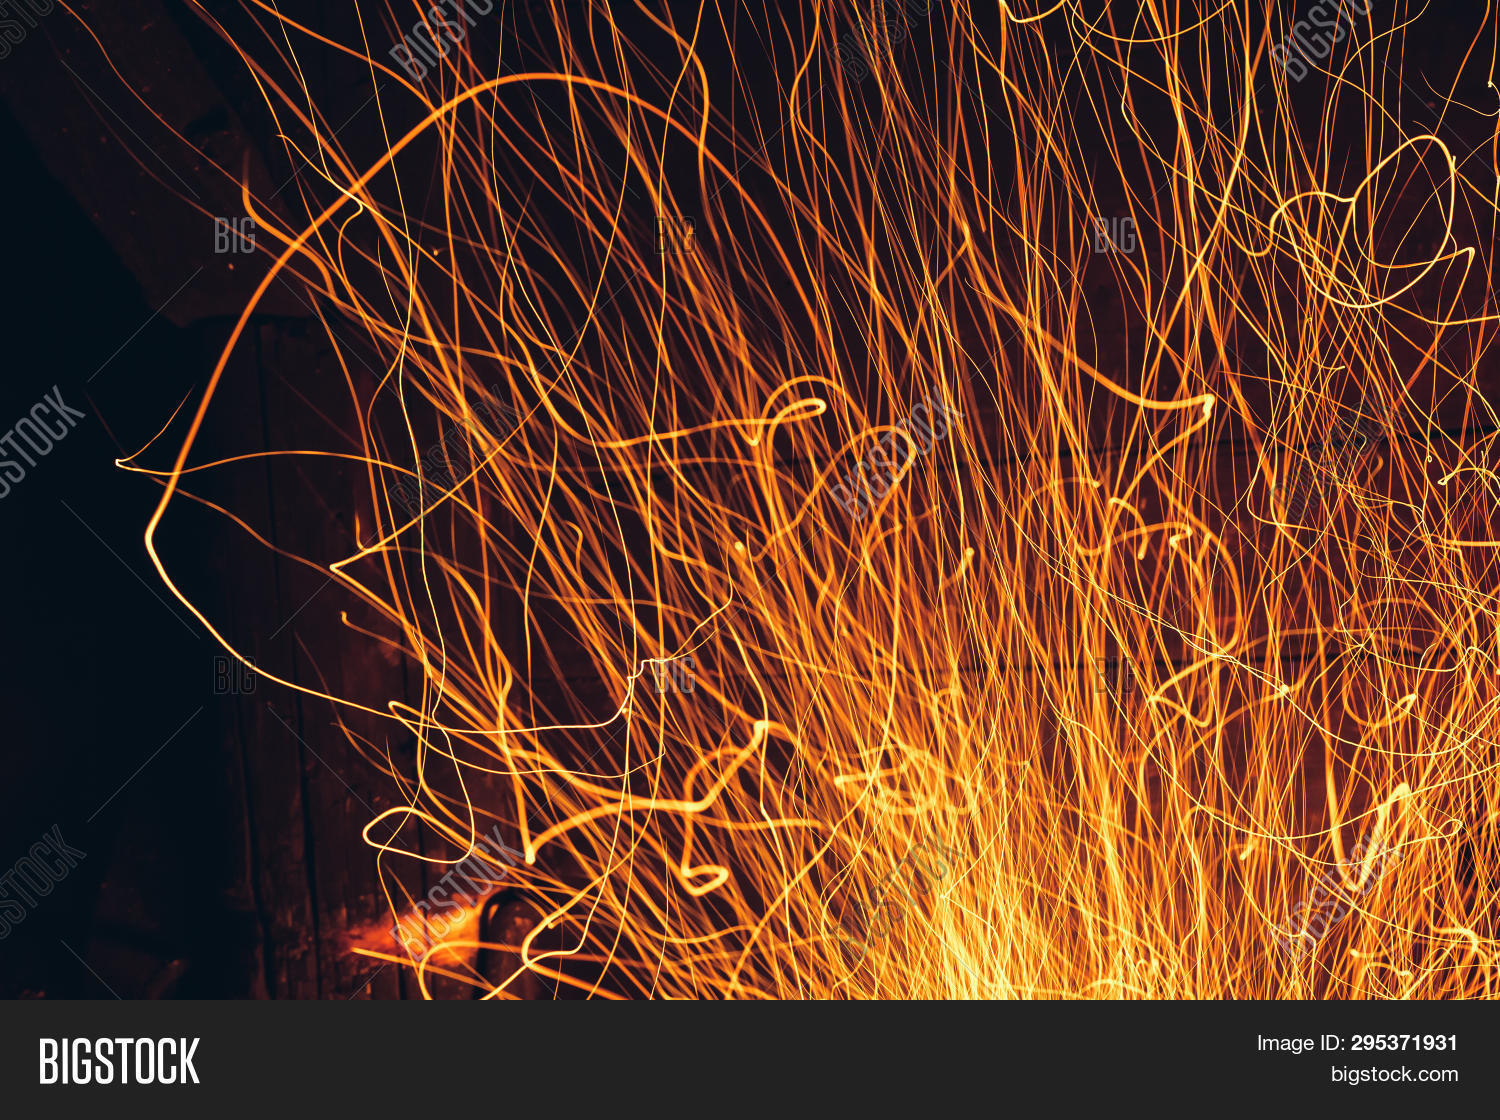 Yellow Fire Sparks Image & Photo (Free Trial) | Bigstock